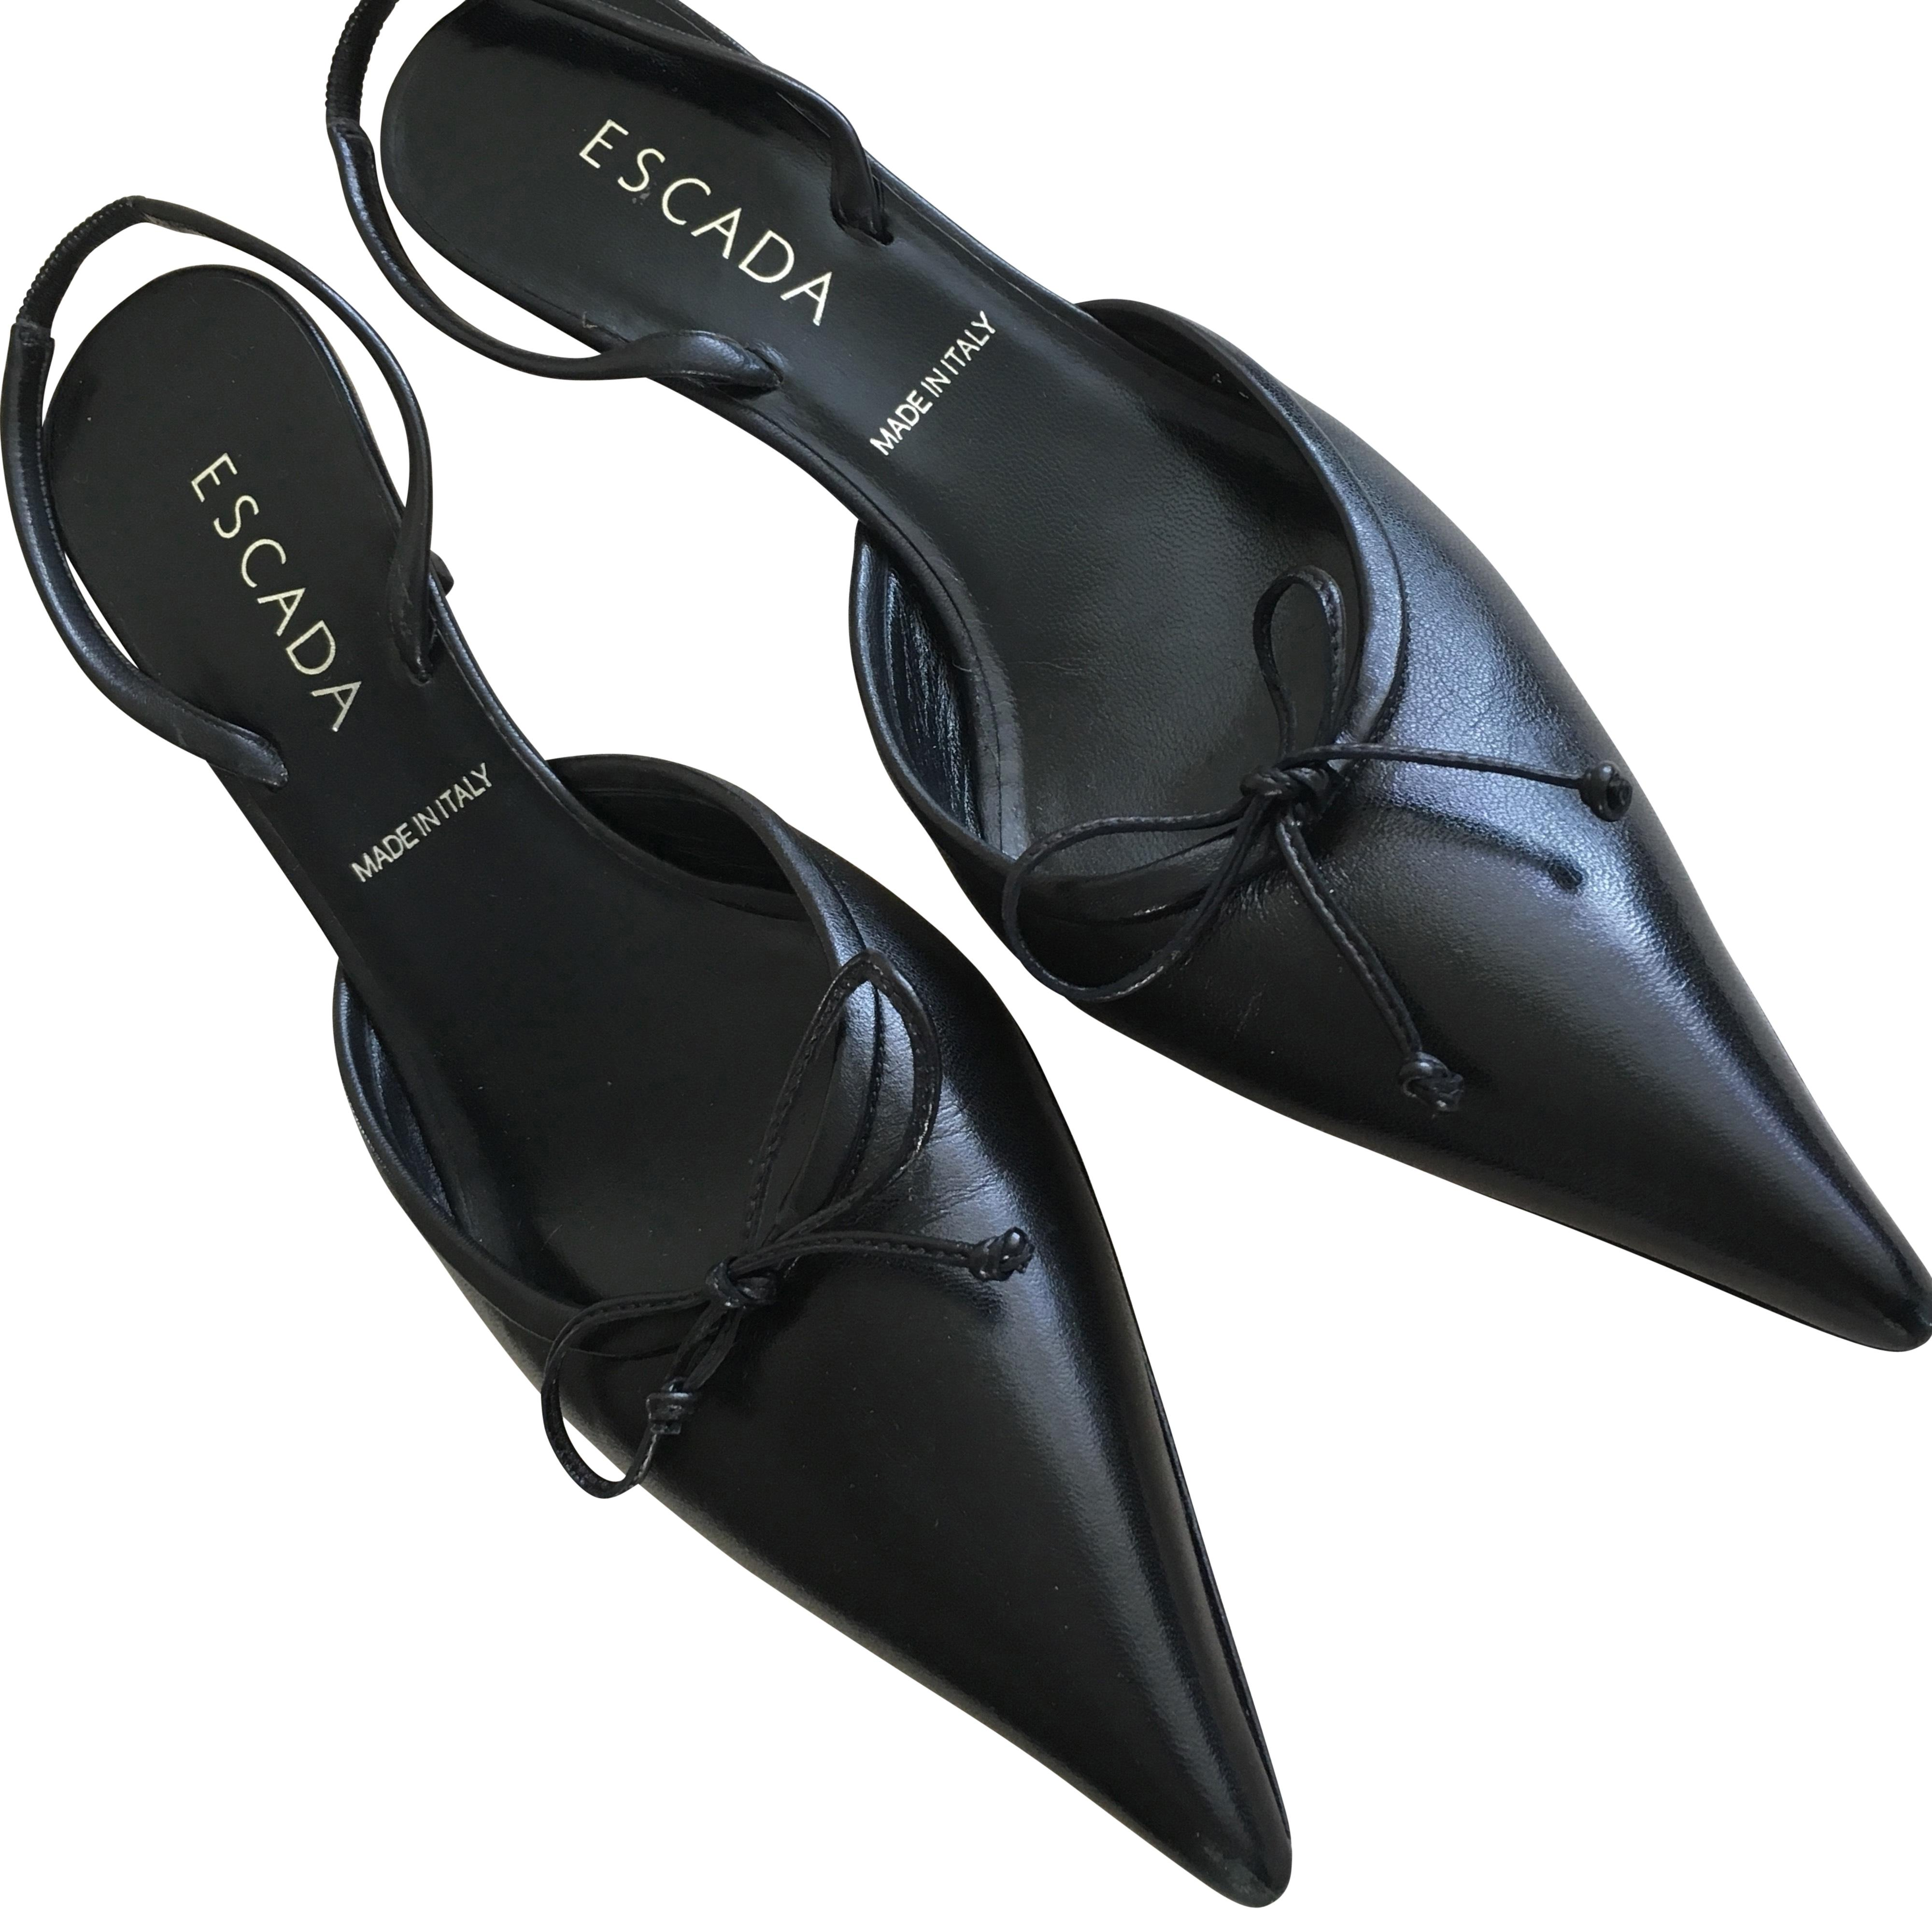 561f81dc800 Escada Black Leather Slingback with Bow Detail Pumps Size Size Size EU 37.5  (Approx. US 7.5) Regular (M